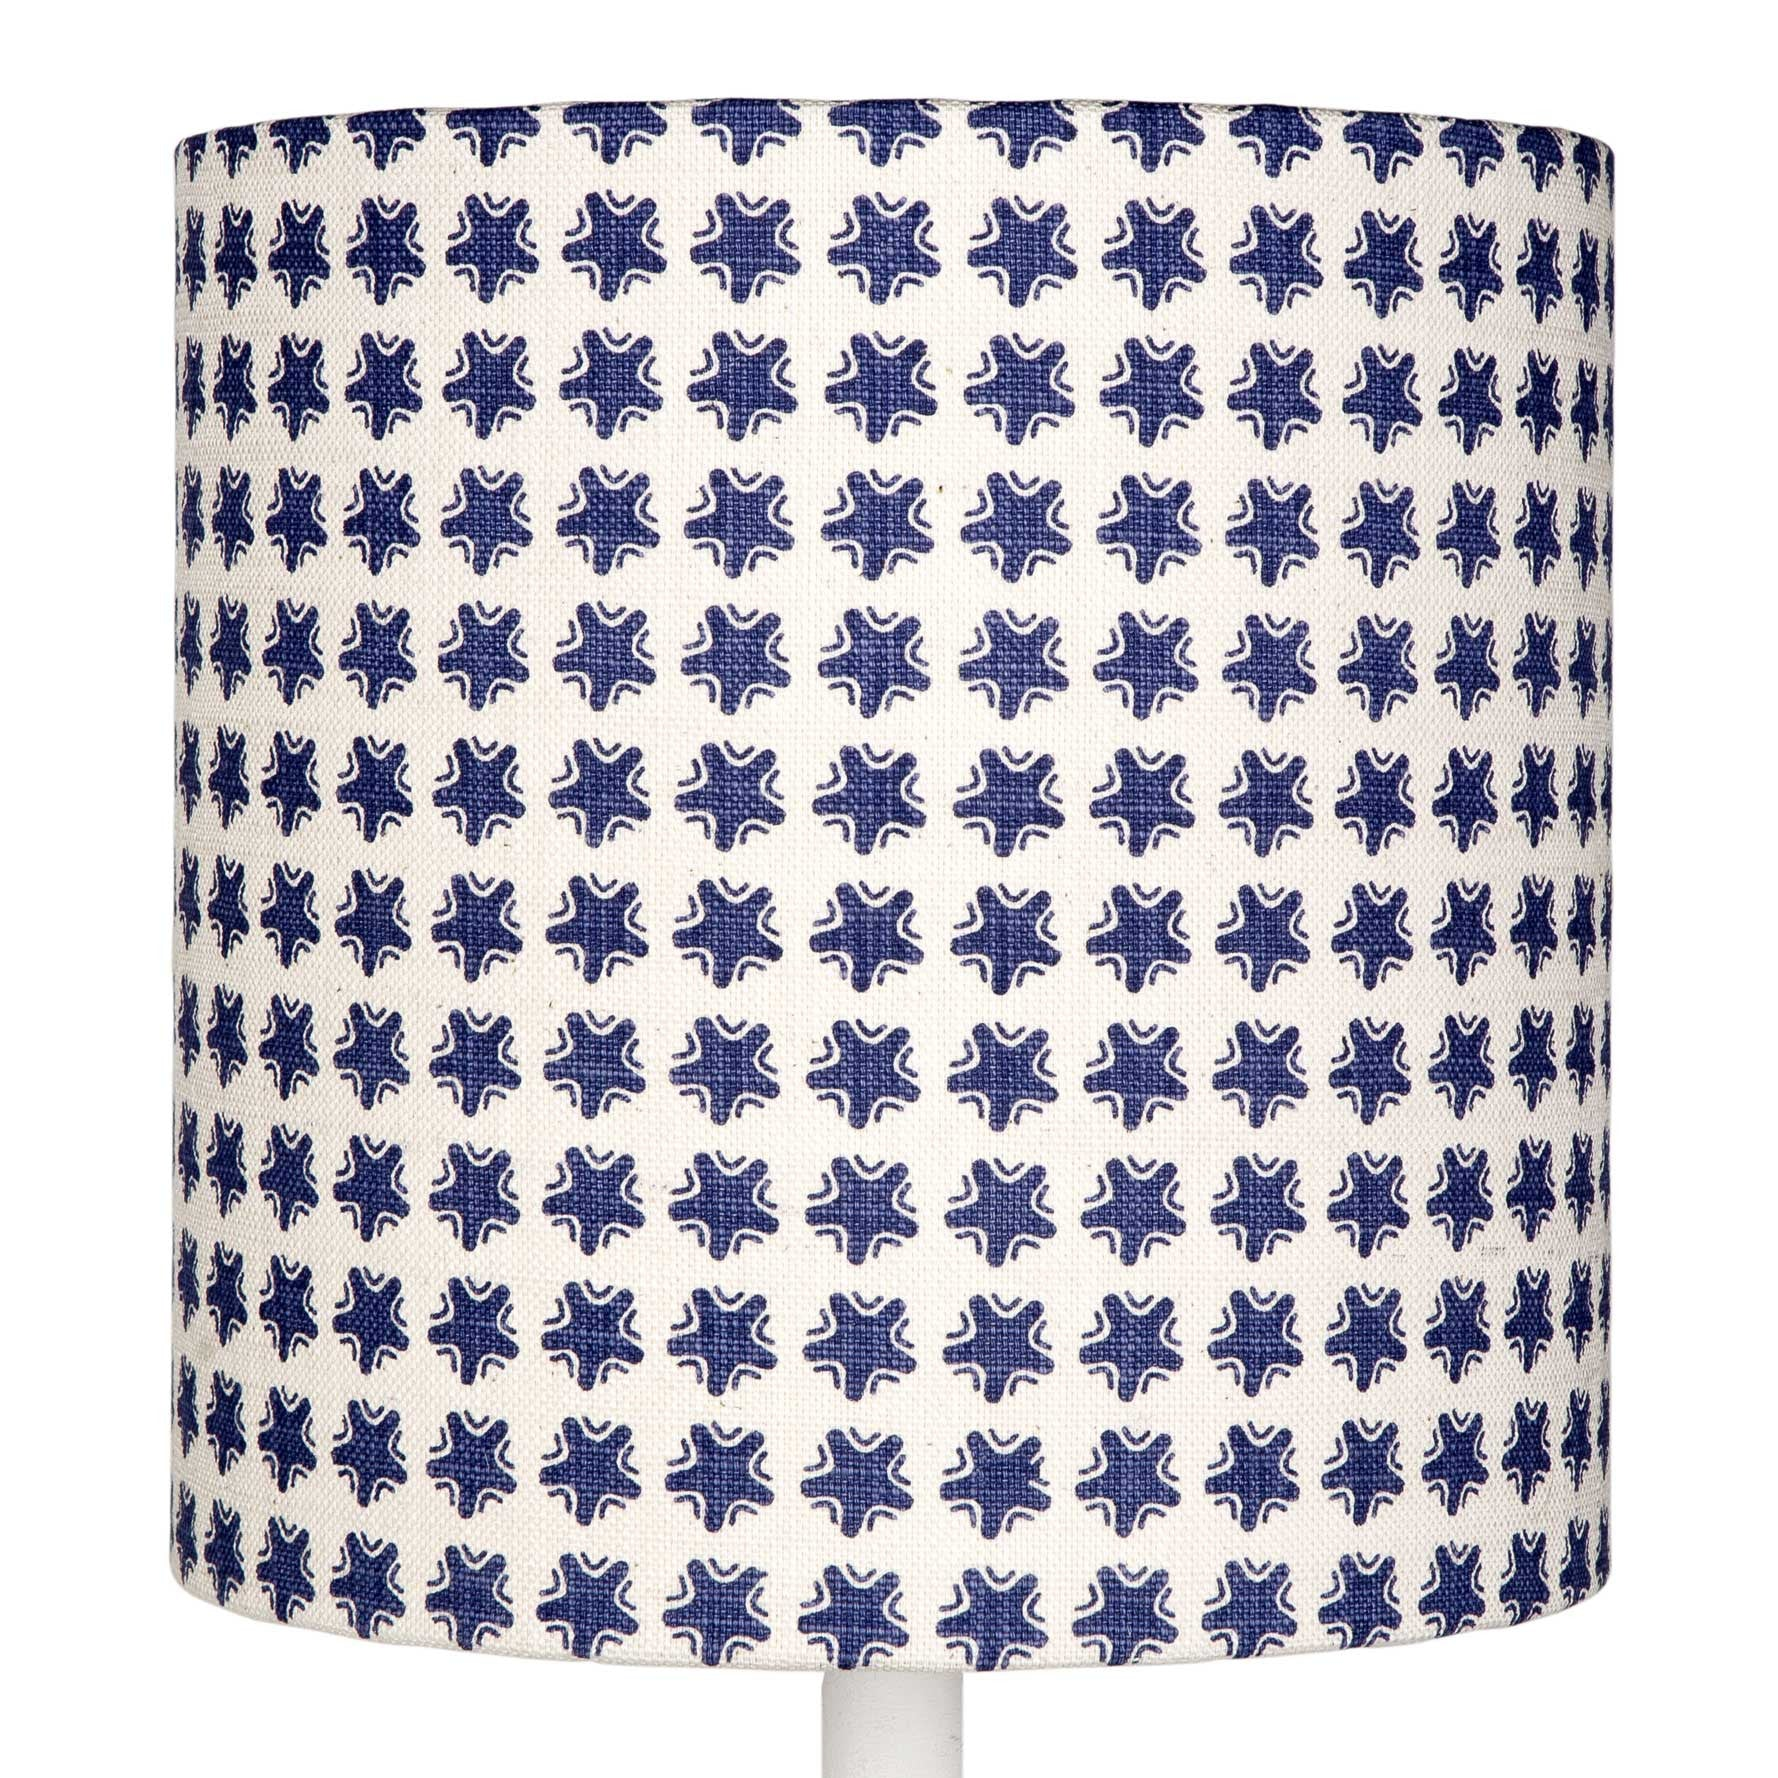 Blue Stars table lampshade